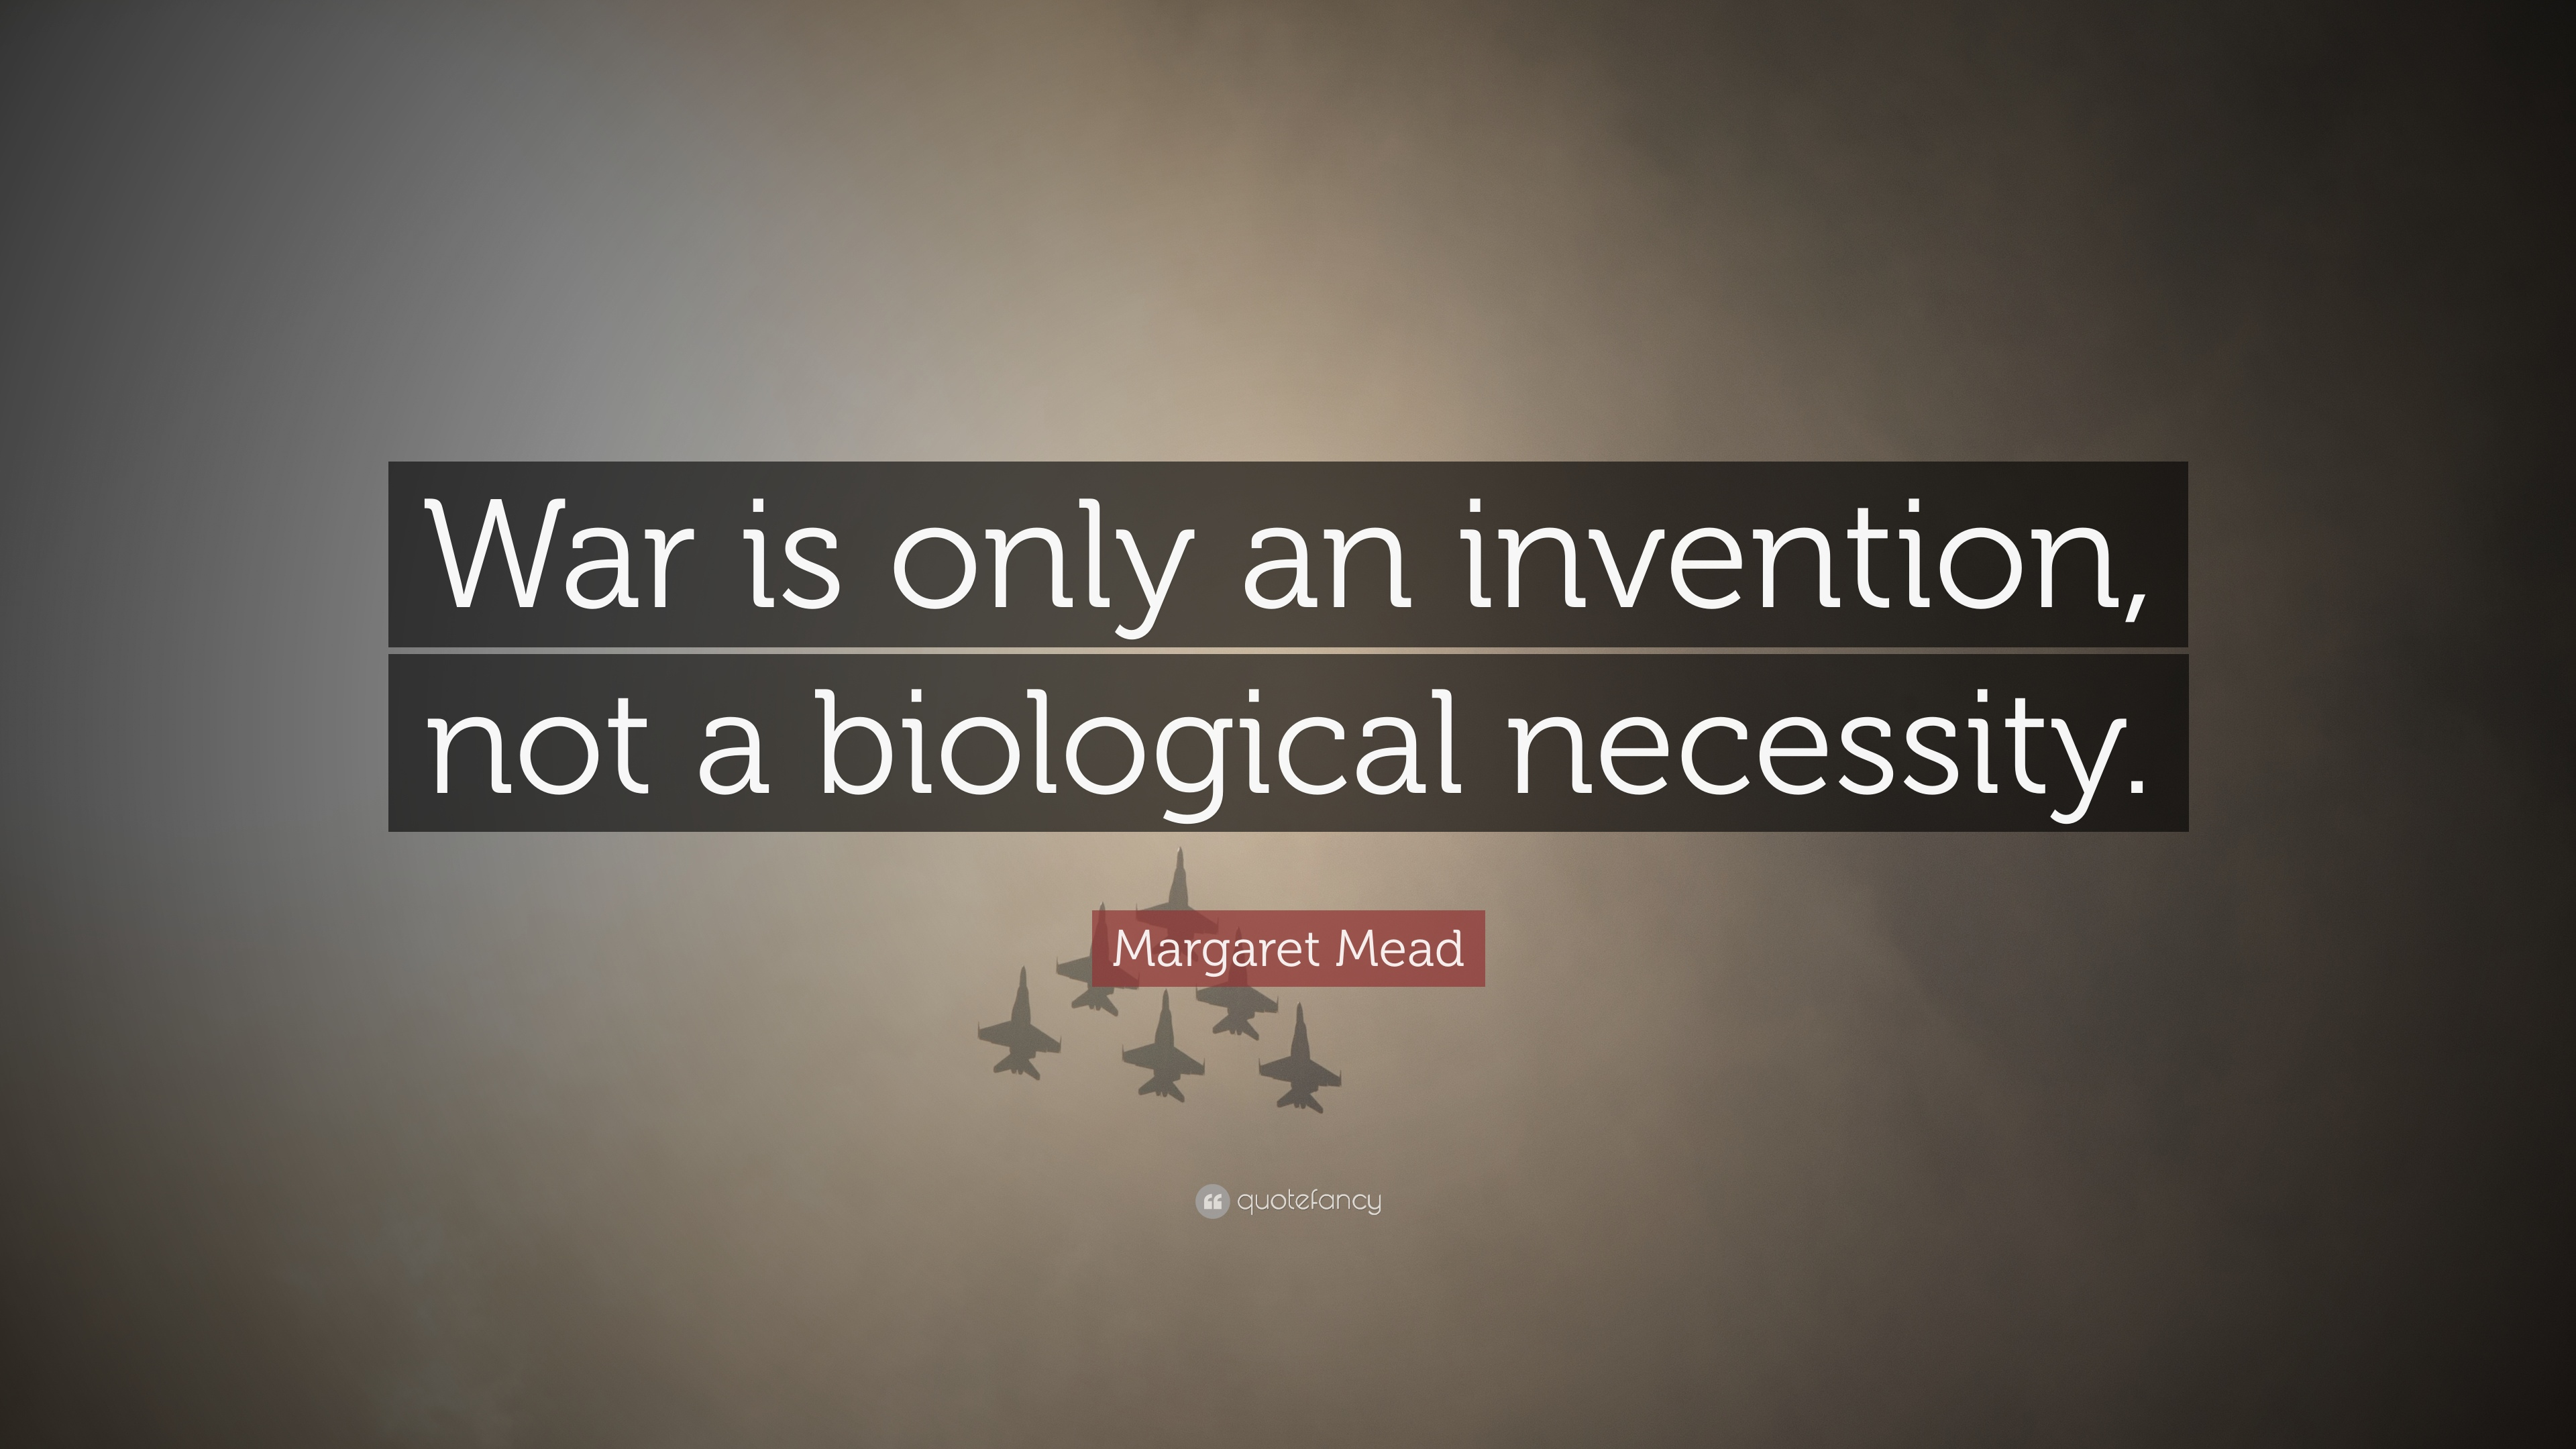 "warfare an invention not a biological necessity essay ""war and the threat of war are not the only determinants of the  john u nef,  war and human progress: an essay on the rise of  margaret mead, war is  only an invention, not a biological necessity (betts, p219-23."